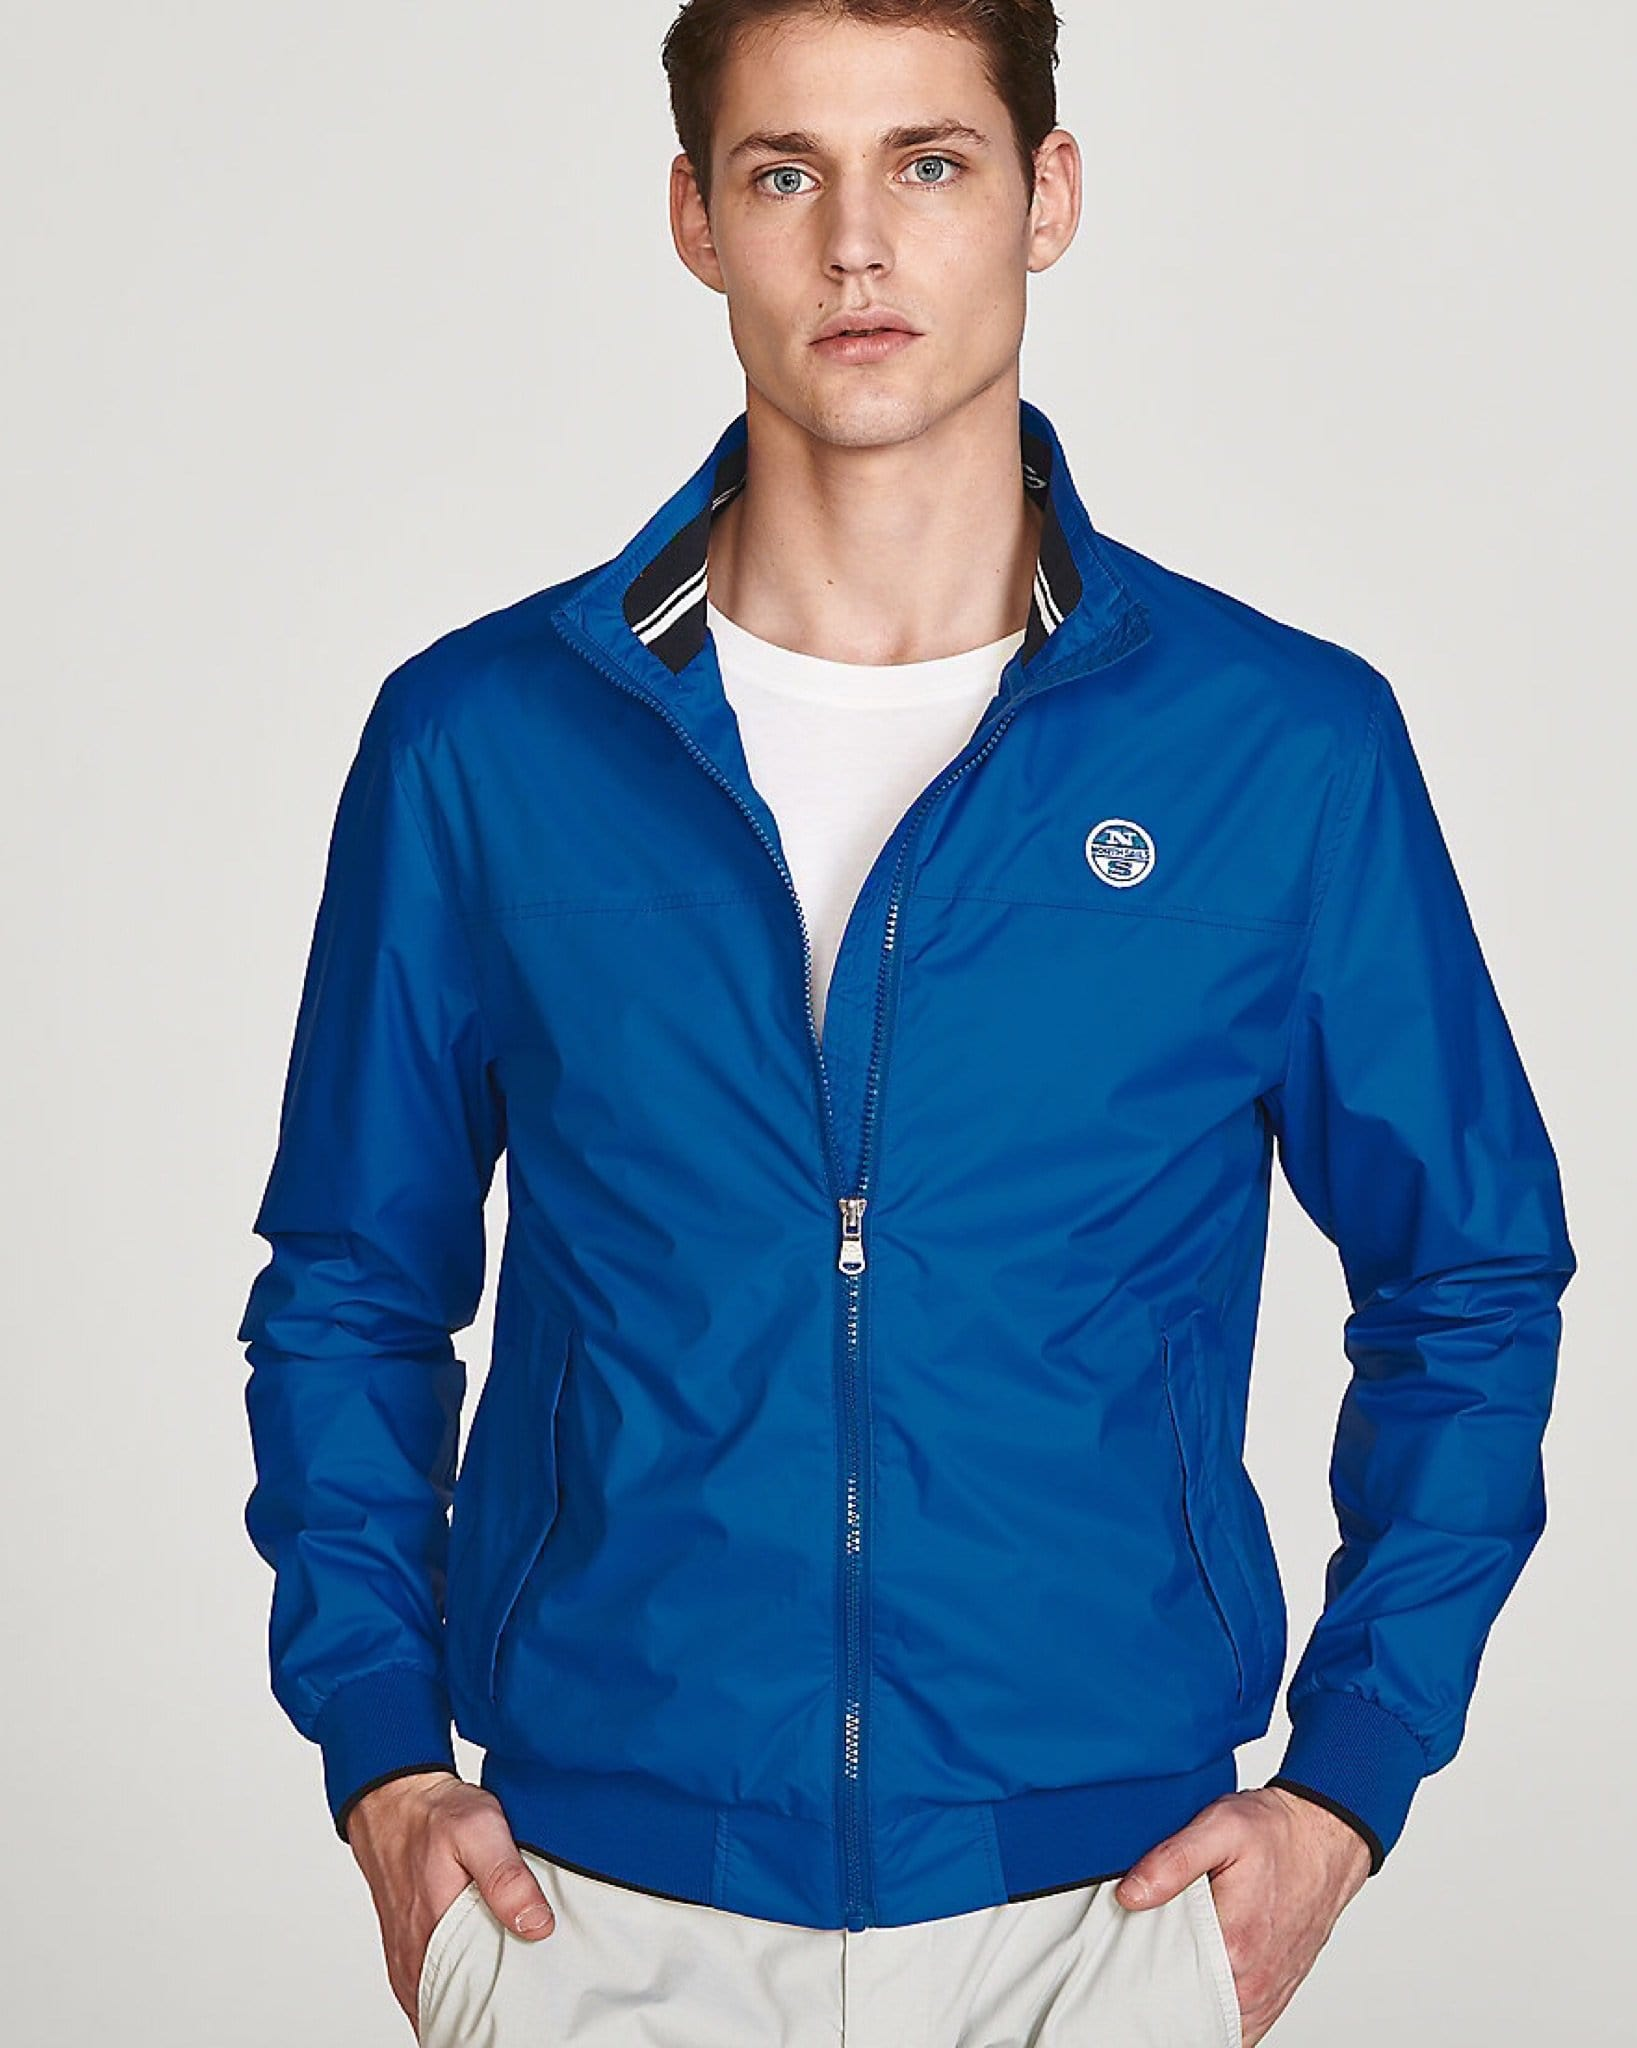 North Sails Sailor Jacket Royal Blue